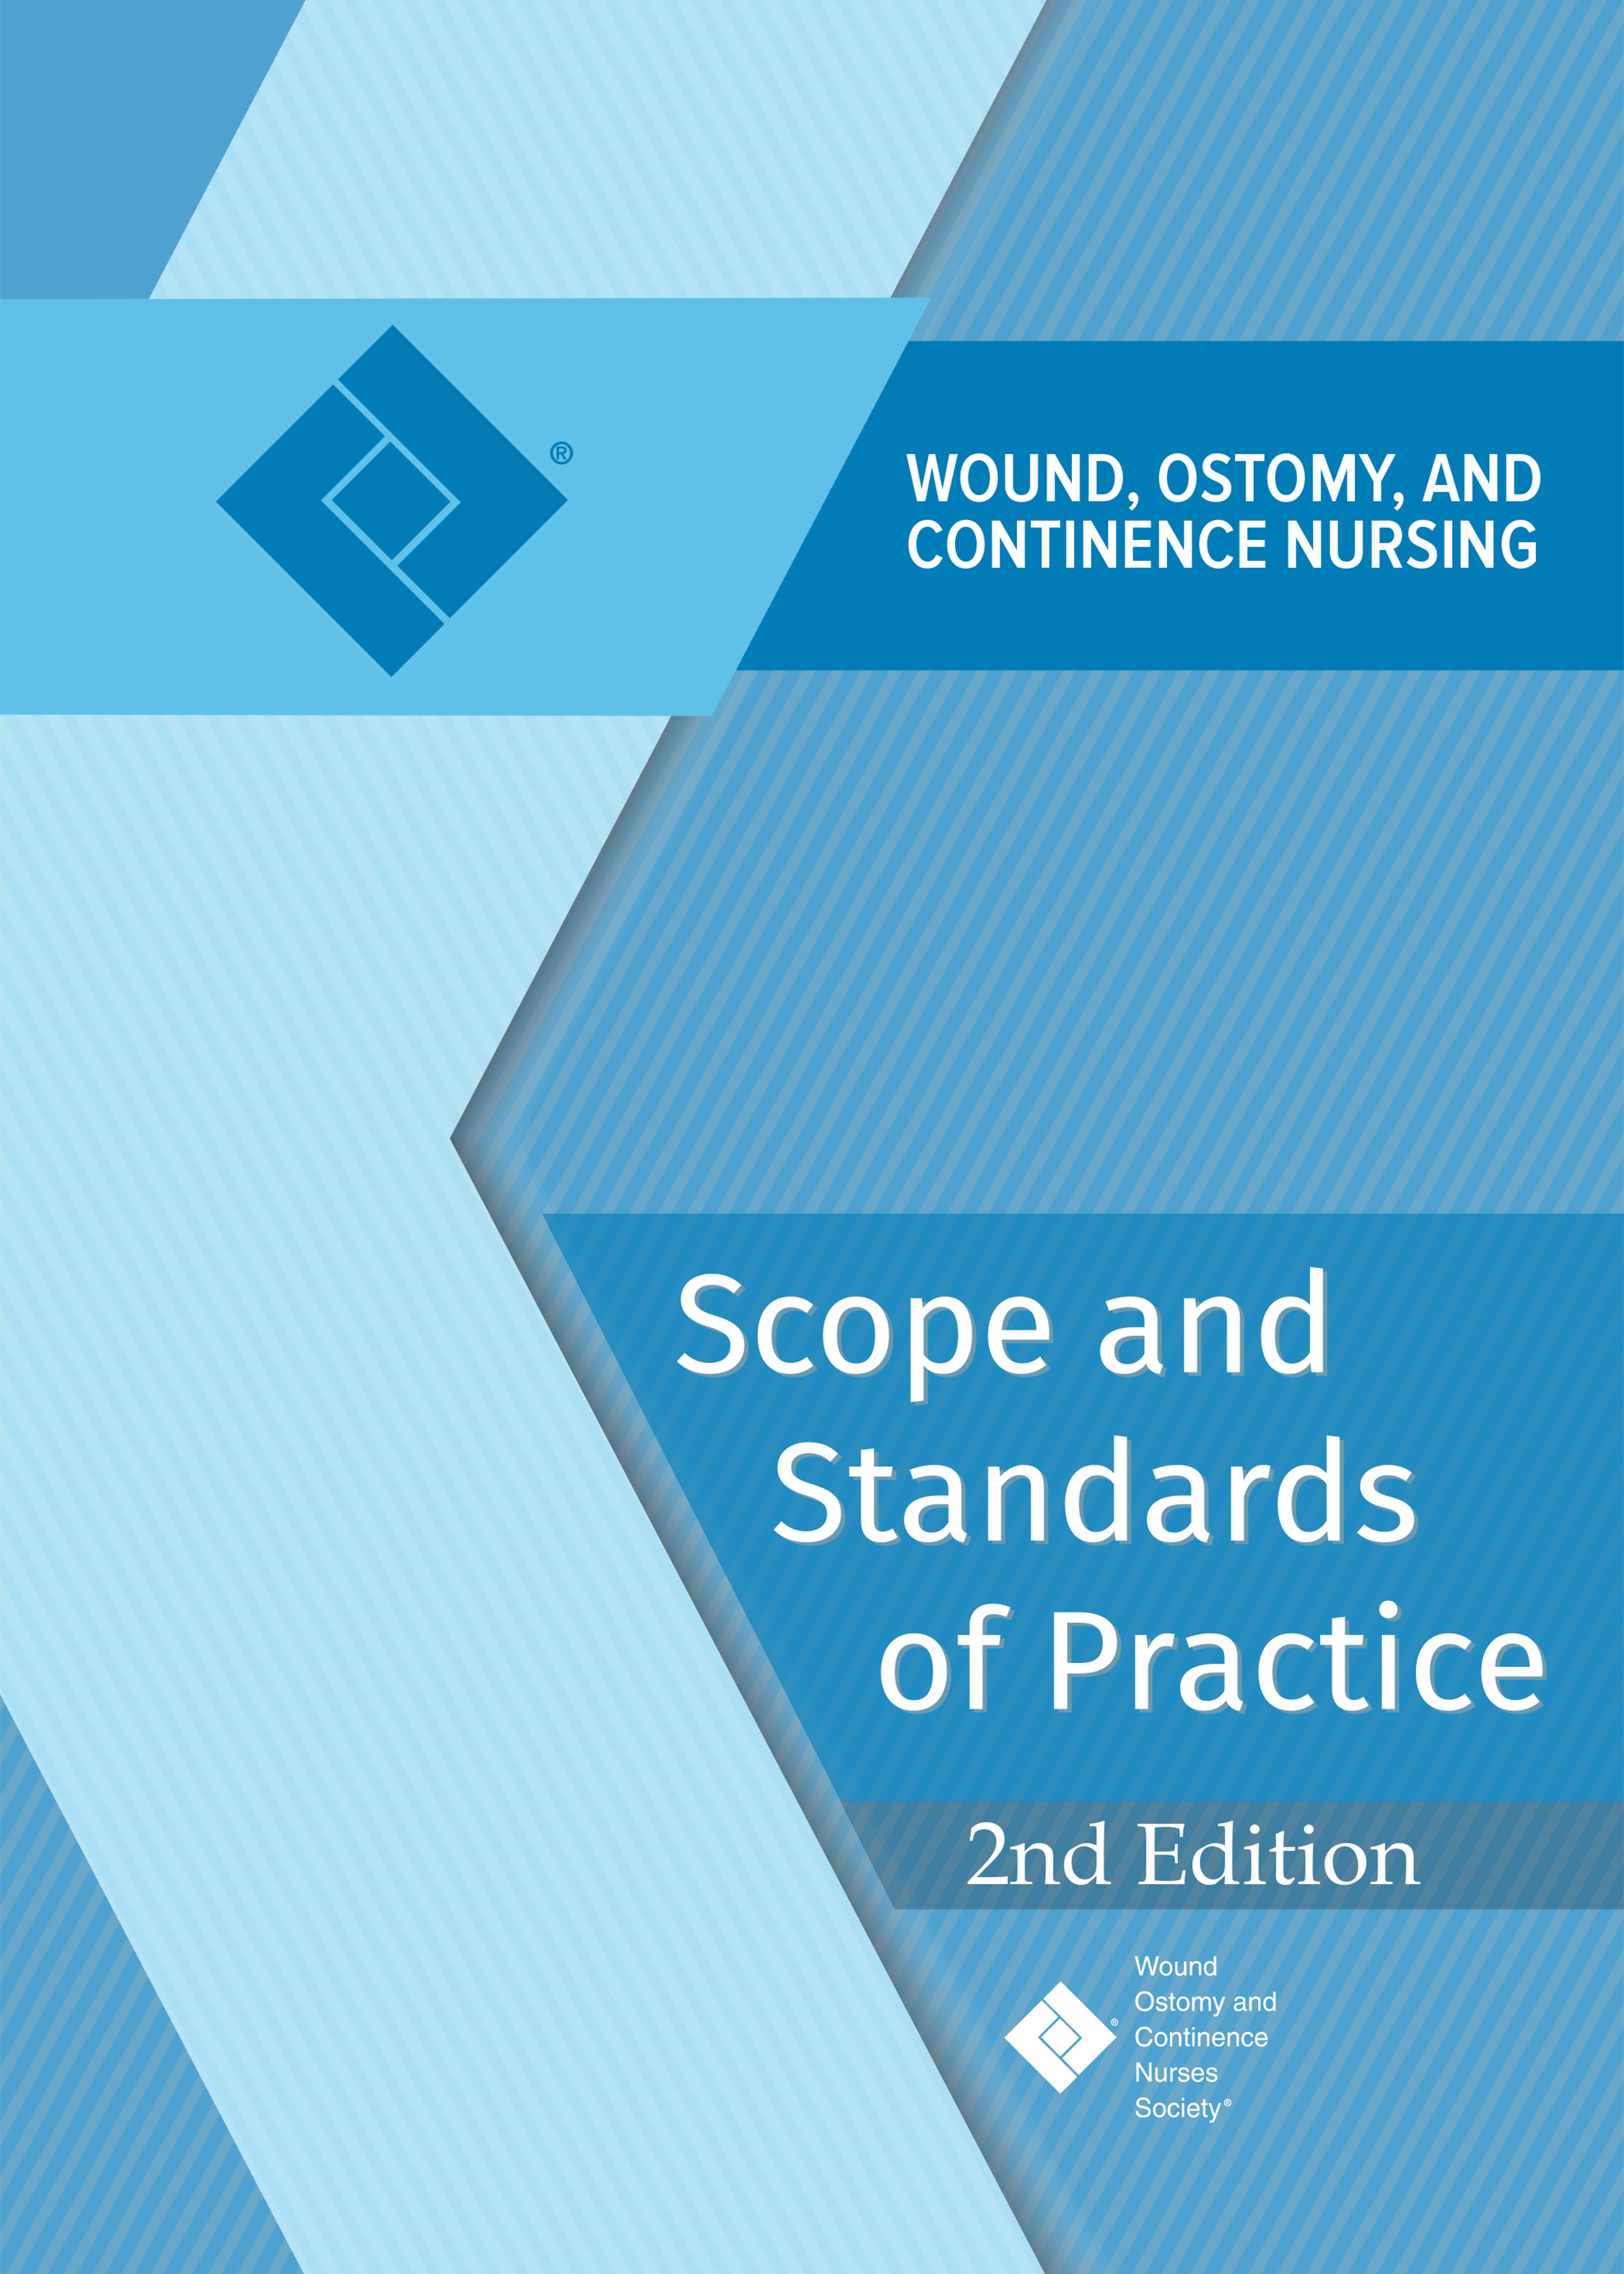 WOC Nursing: Scope and Standards of Practice